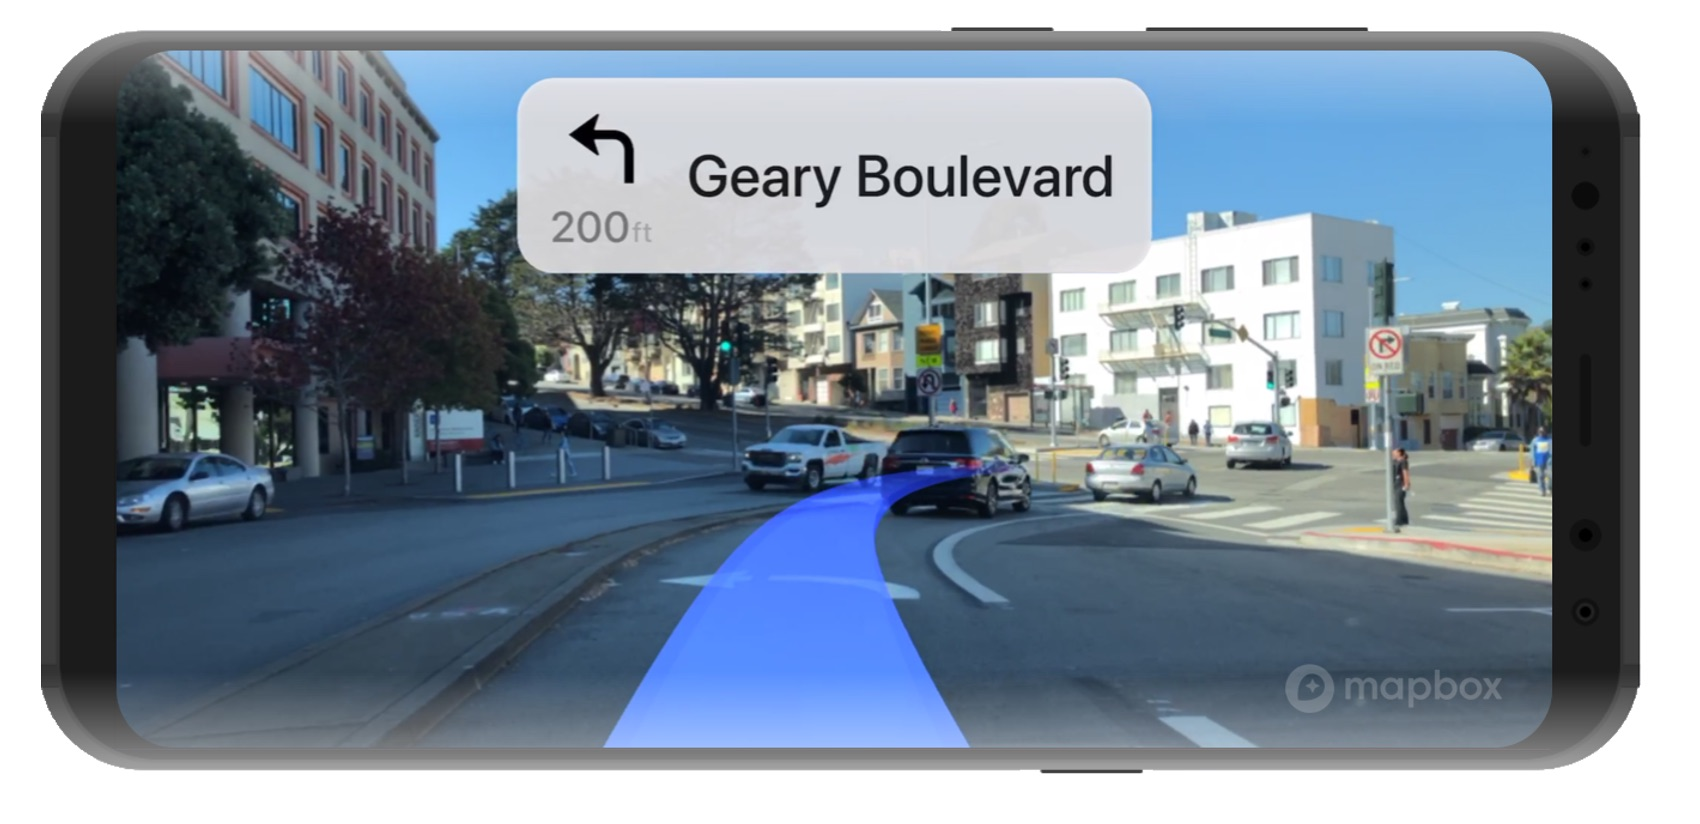 /heres-how-i-created-an-ar-based-android-navigation-system-2n7832p6 feature image